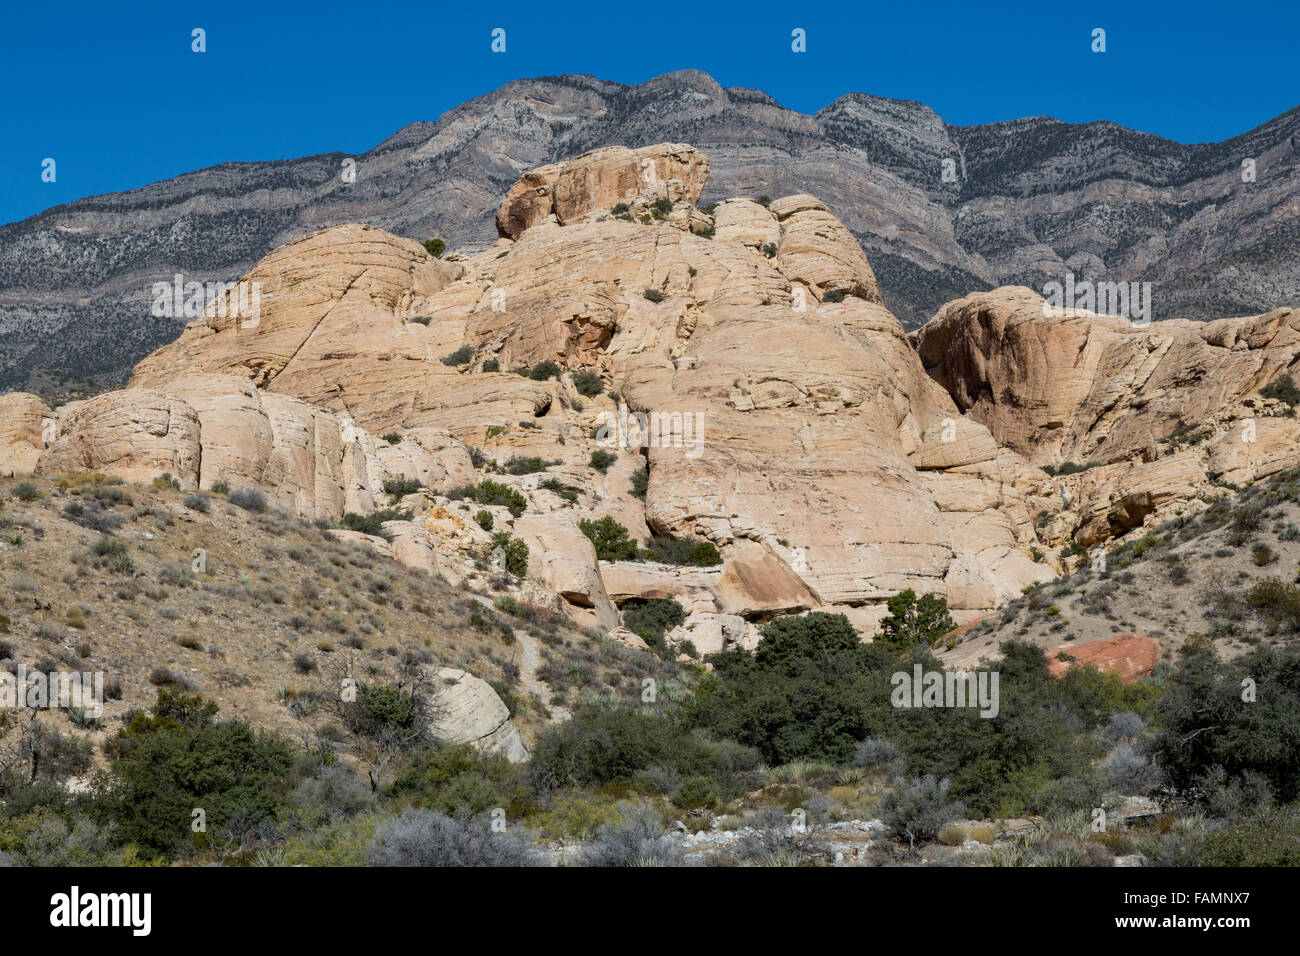 Red Rock Canyon, Nevada.  Gray Limestone of La Madre Mountain Rises up over Younger Light Sandstone in The Keystone - Stock Image